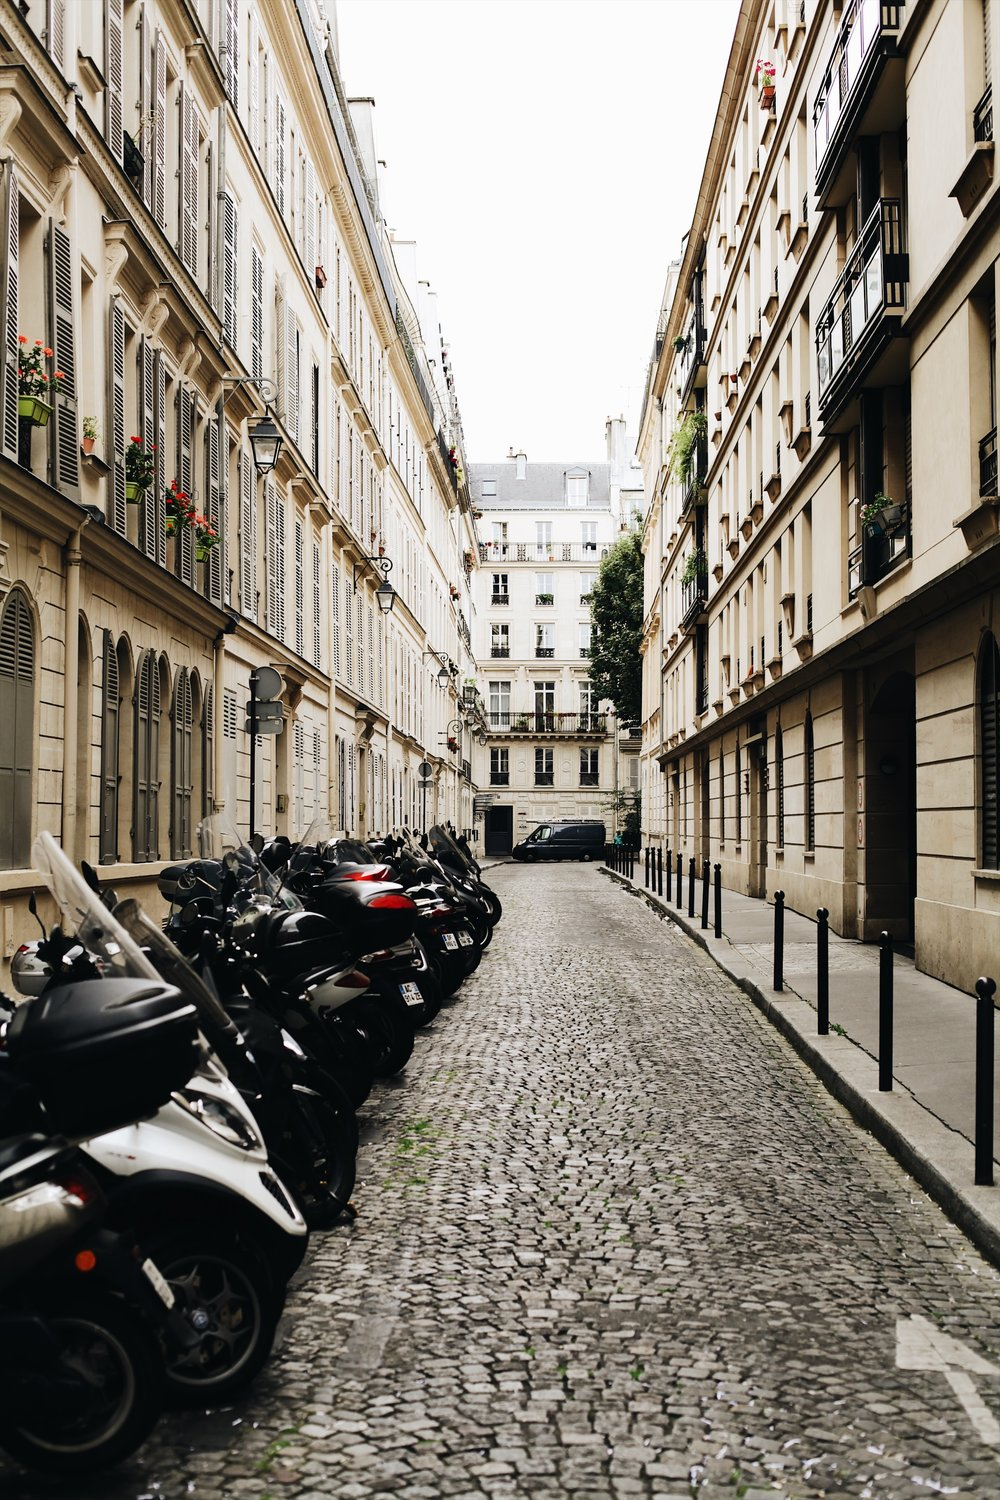 Traveling with Baby, Travel Guide to Paris, France